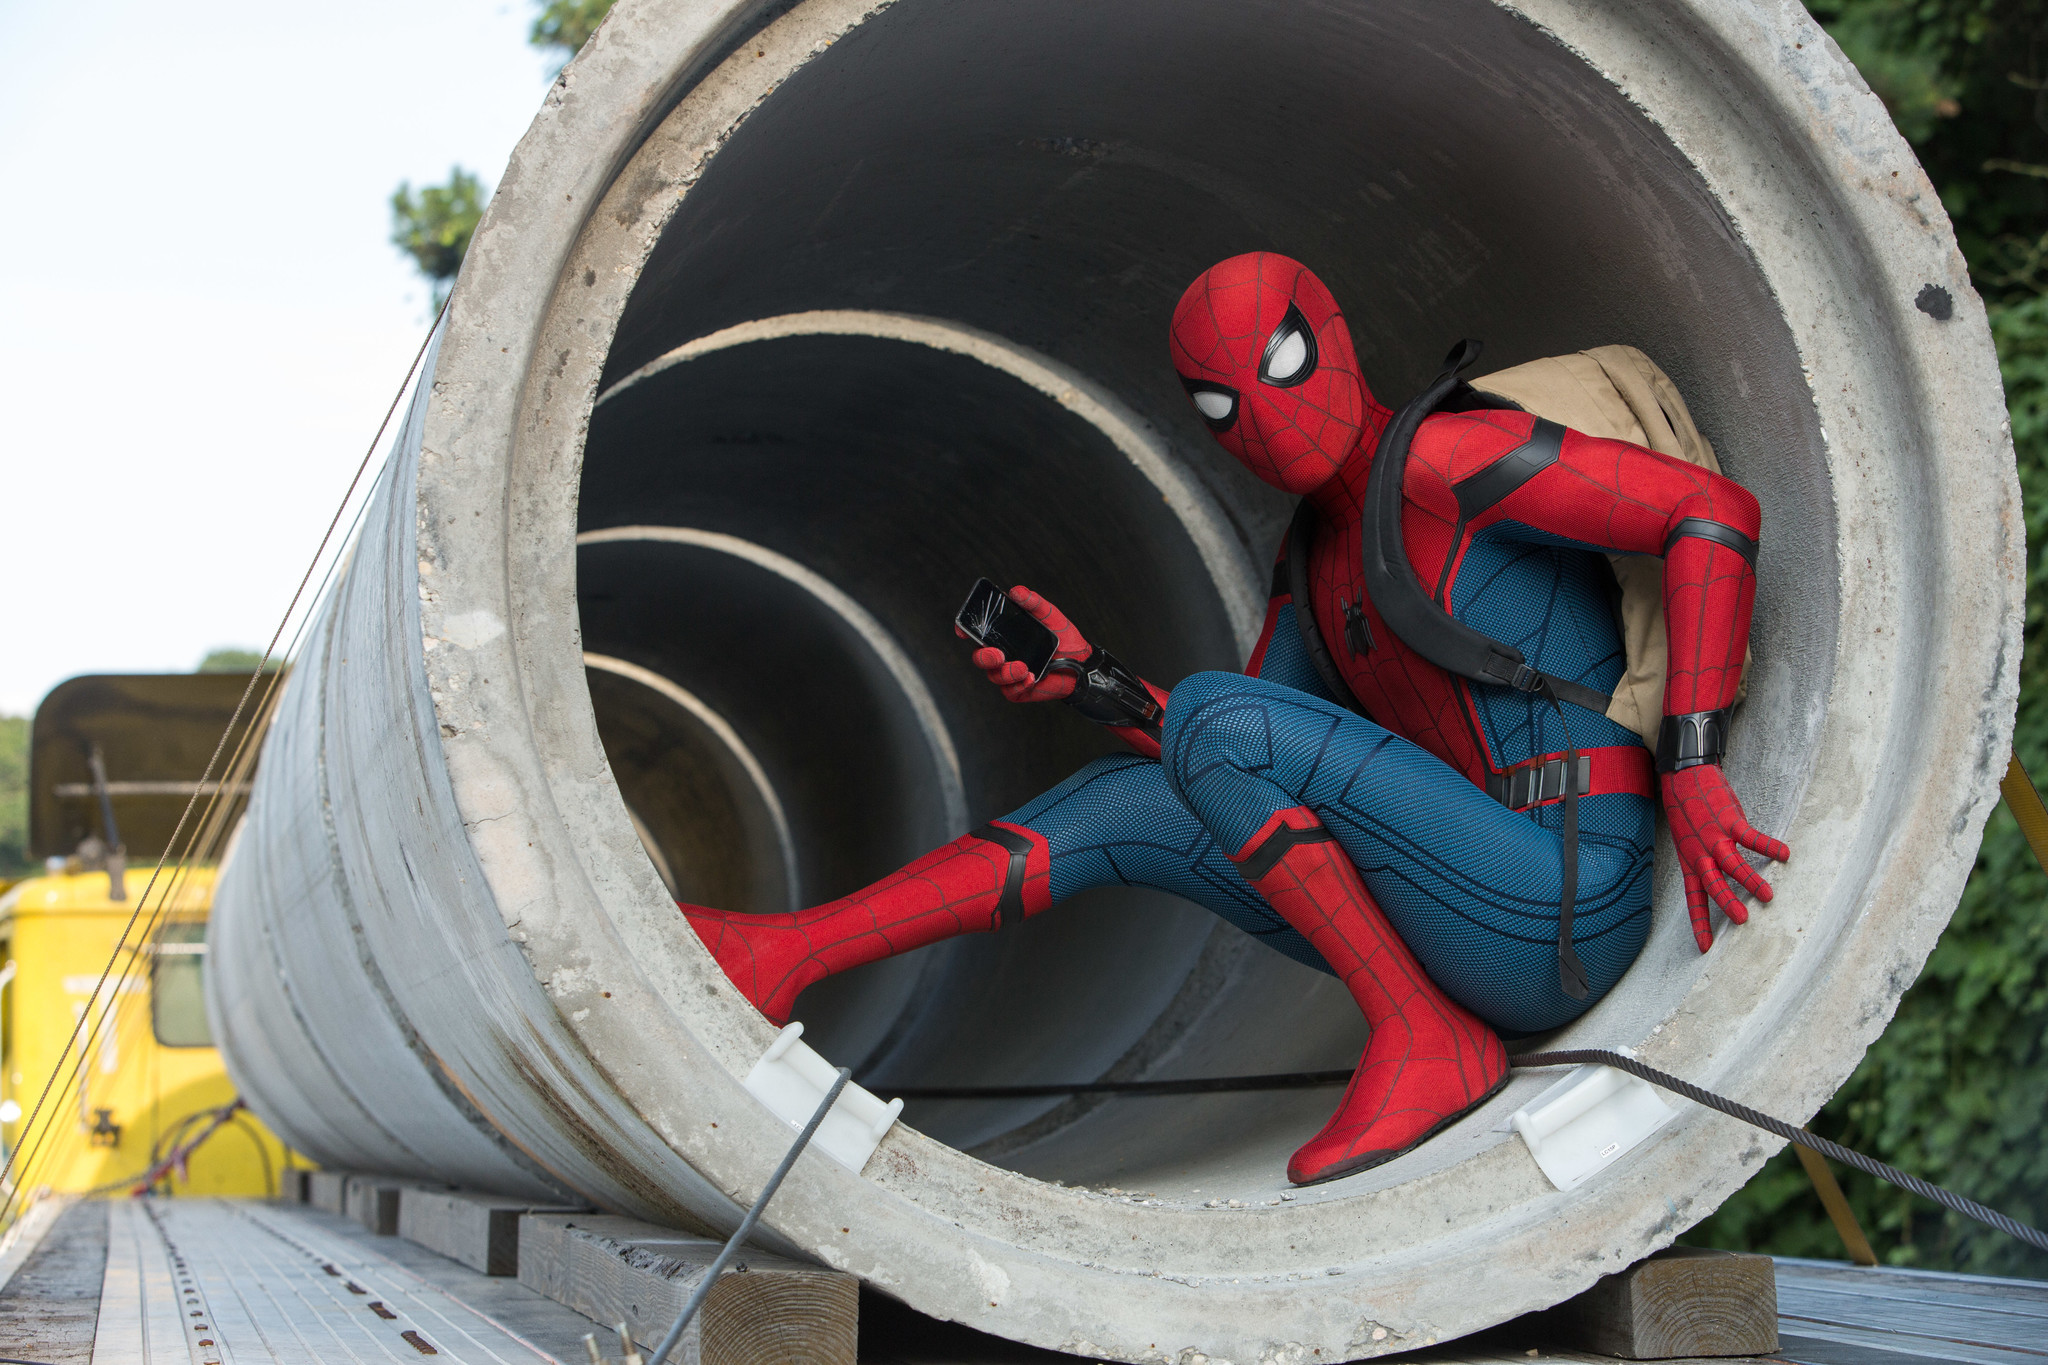 http://www.trbimg.com/img-58f934f4/turbine/la-et-images-spider-man-homecoming-pictures-007